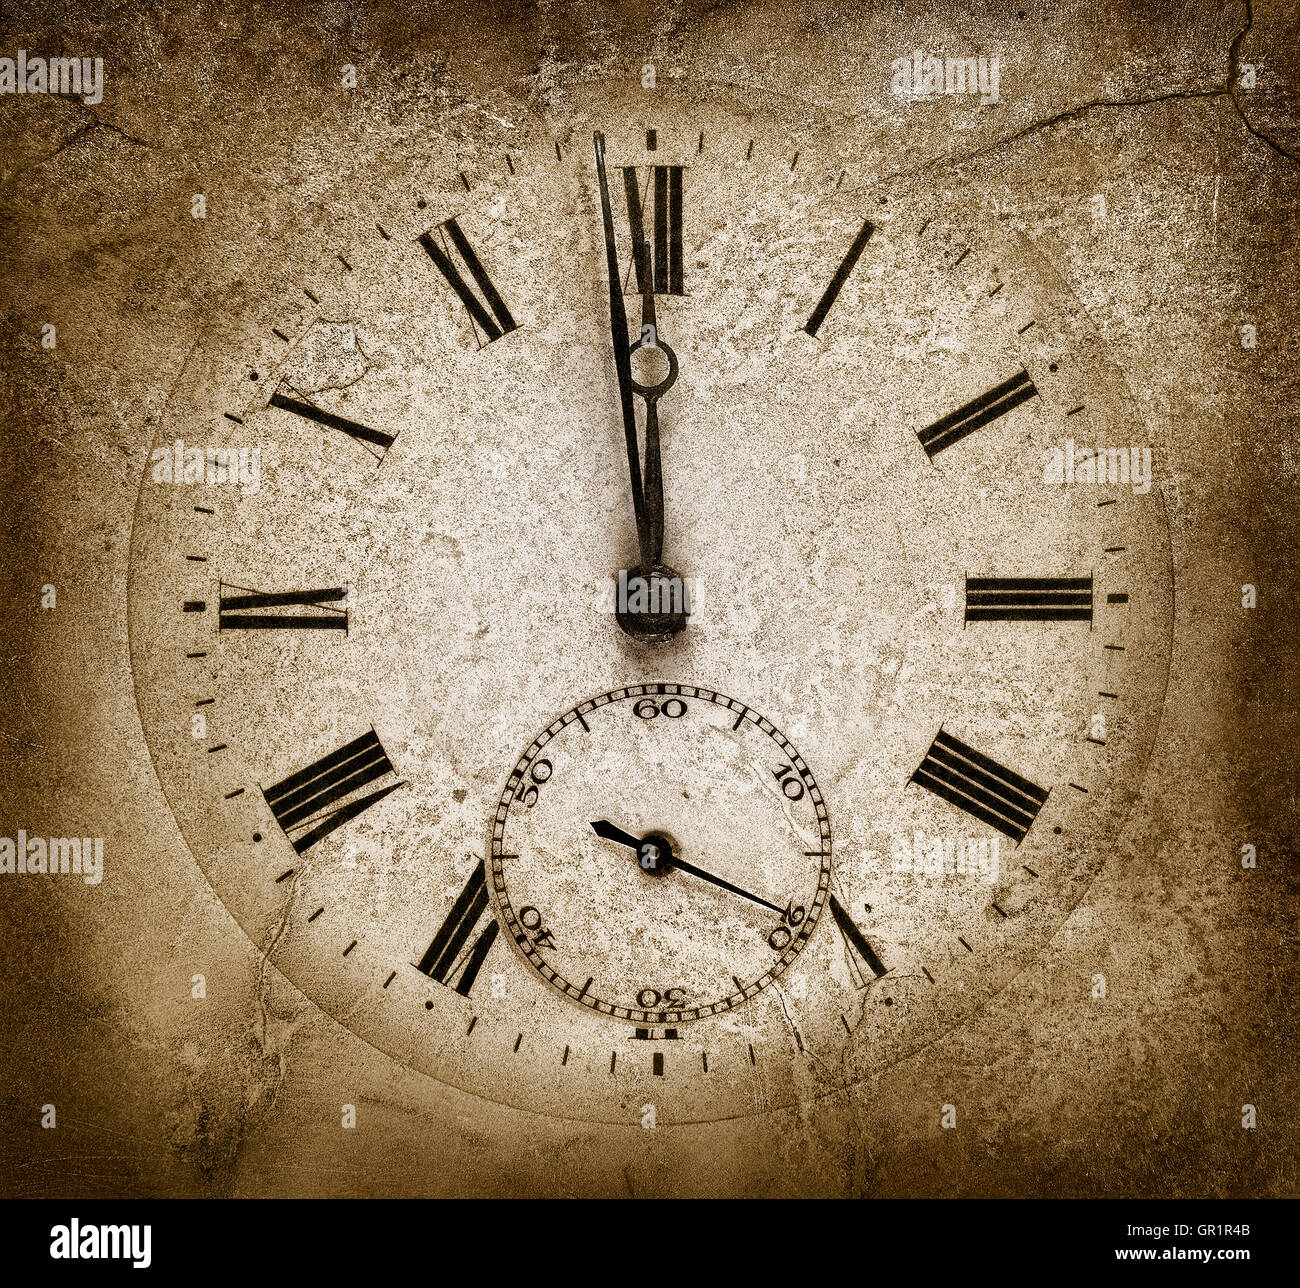 Stone clock.One minute to midnight. Cracked texture - Stock Image